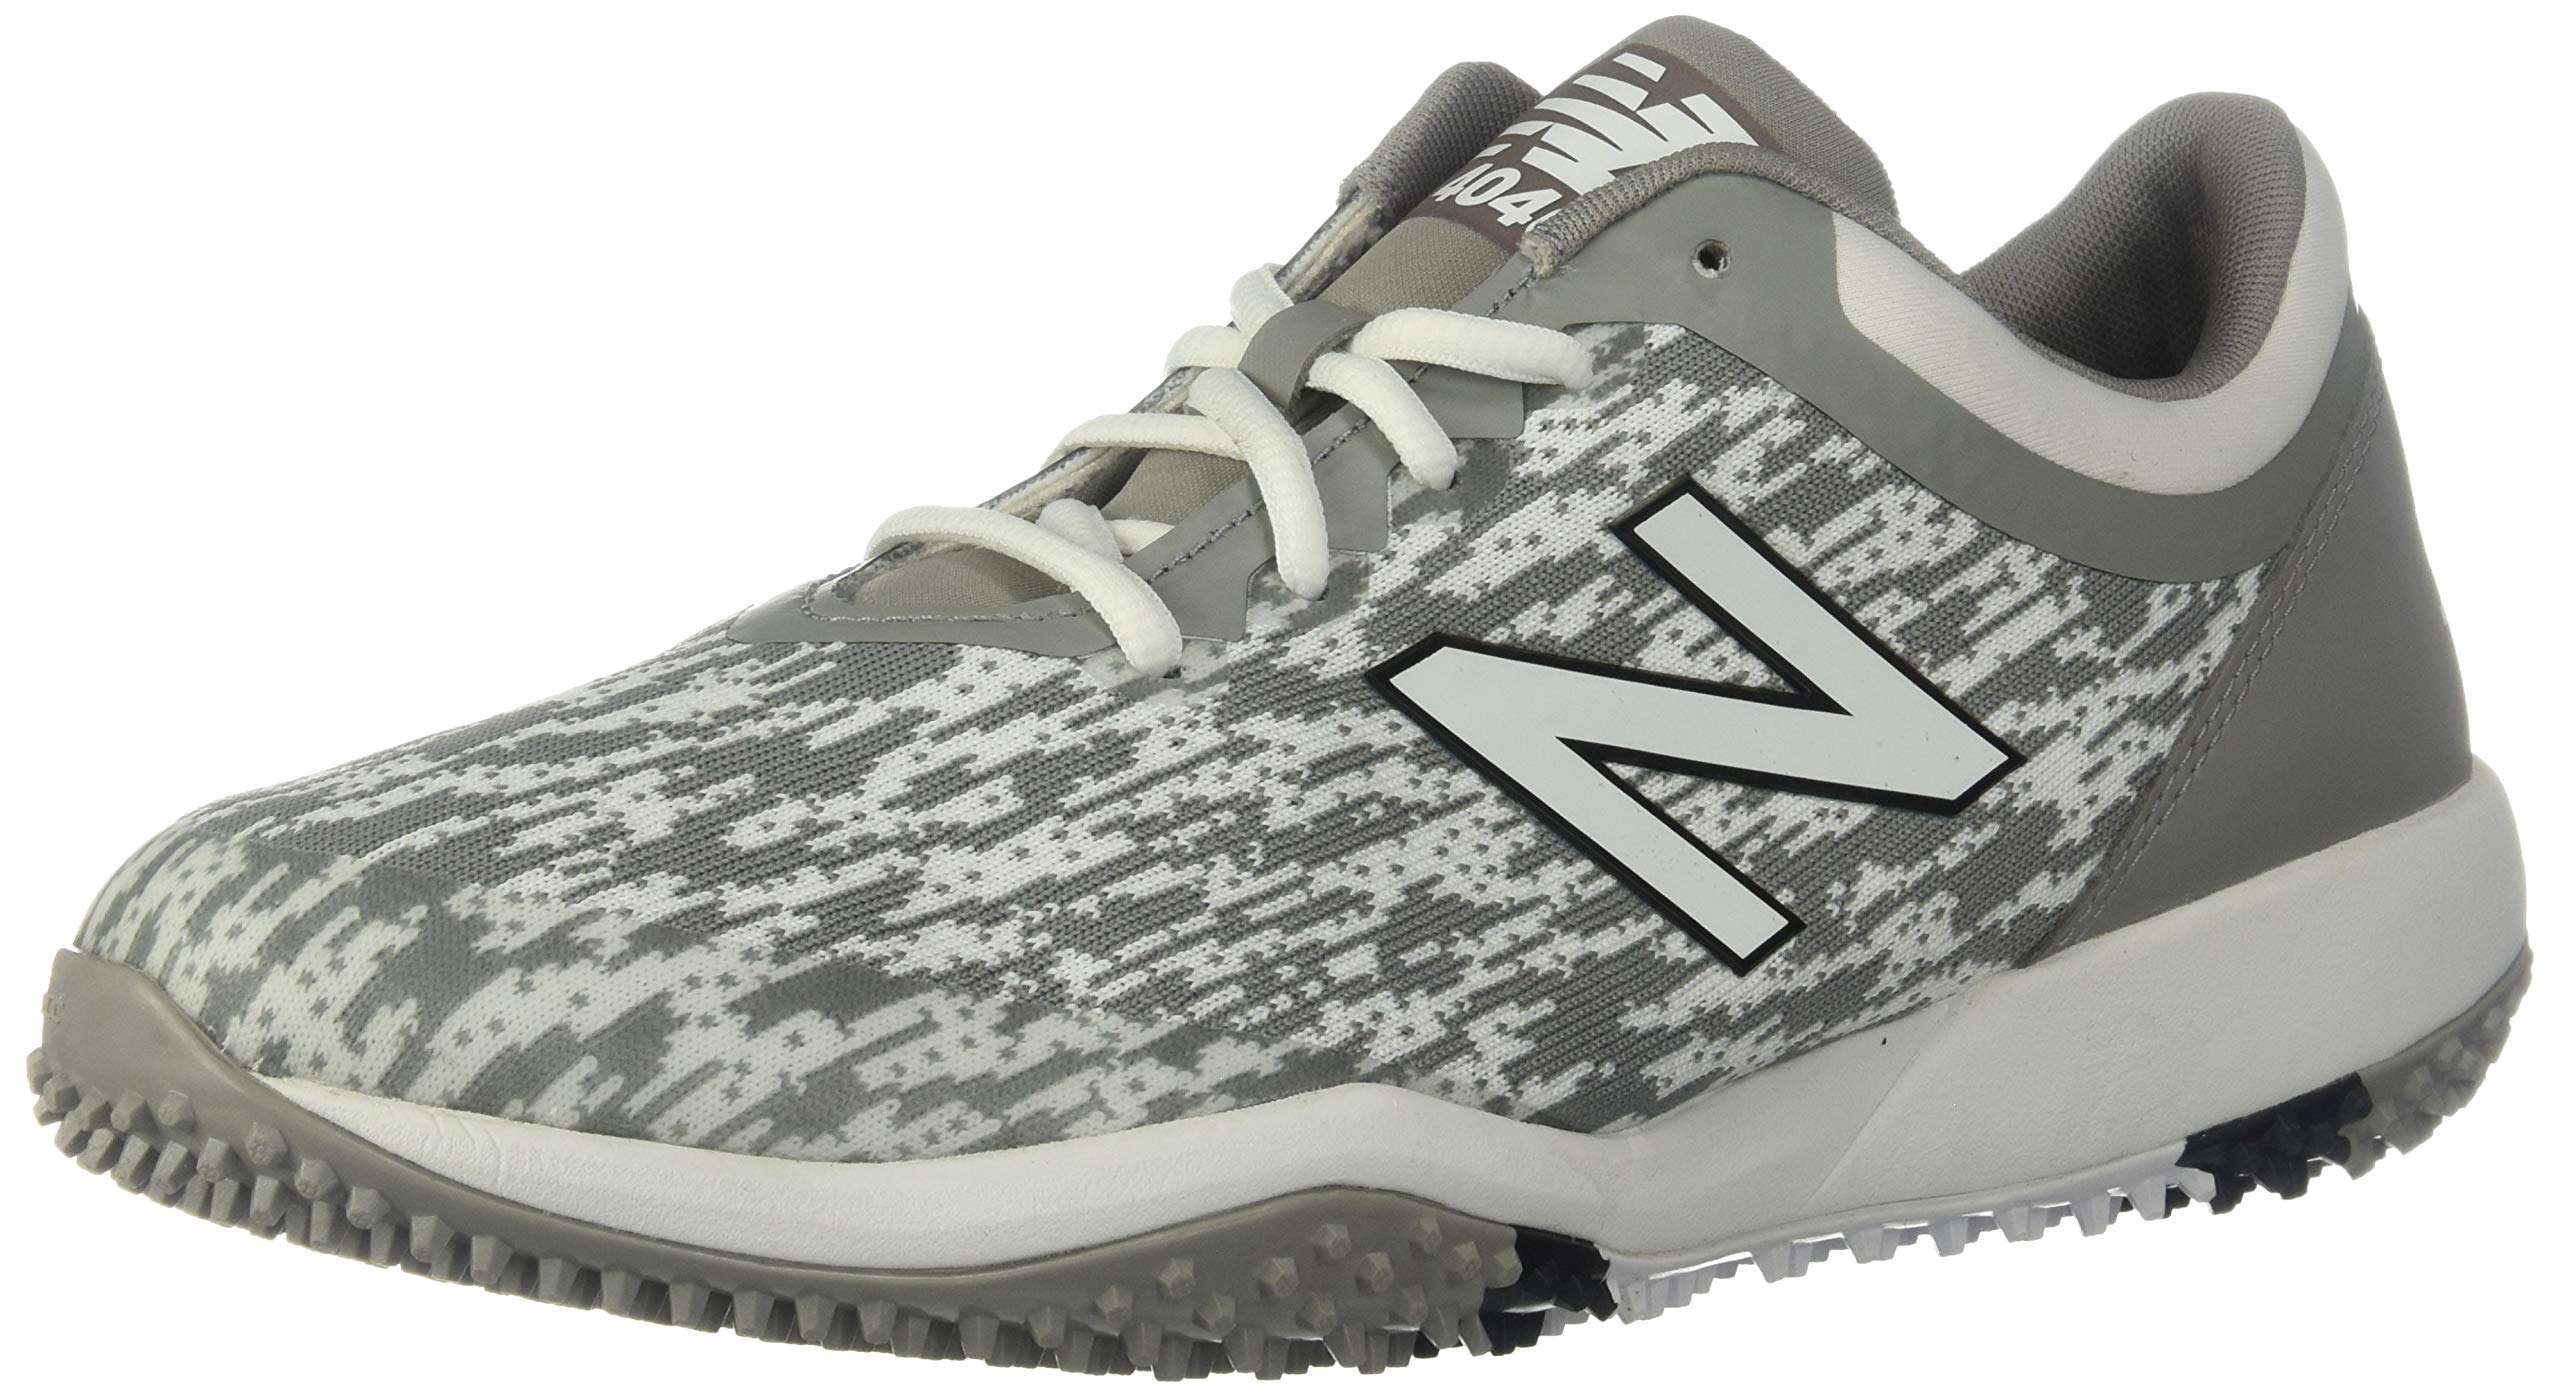 New Balance Men's 4040v5 Turf Running Shoe, Grey/White, 5 D US